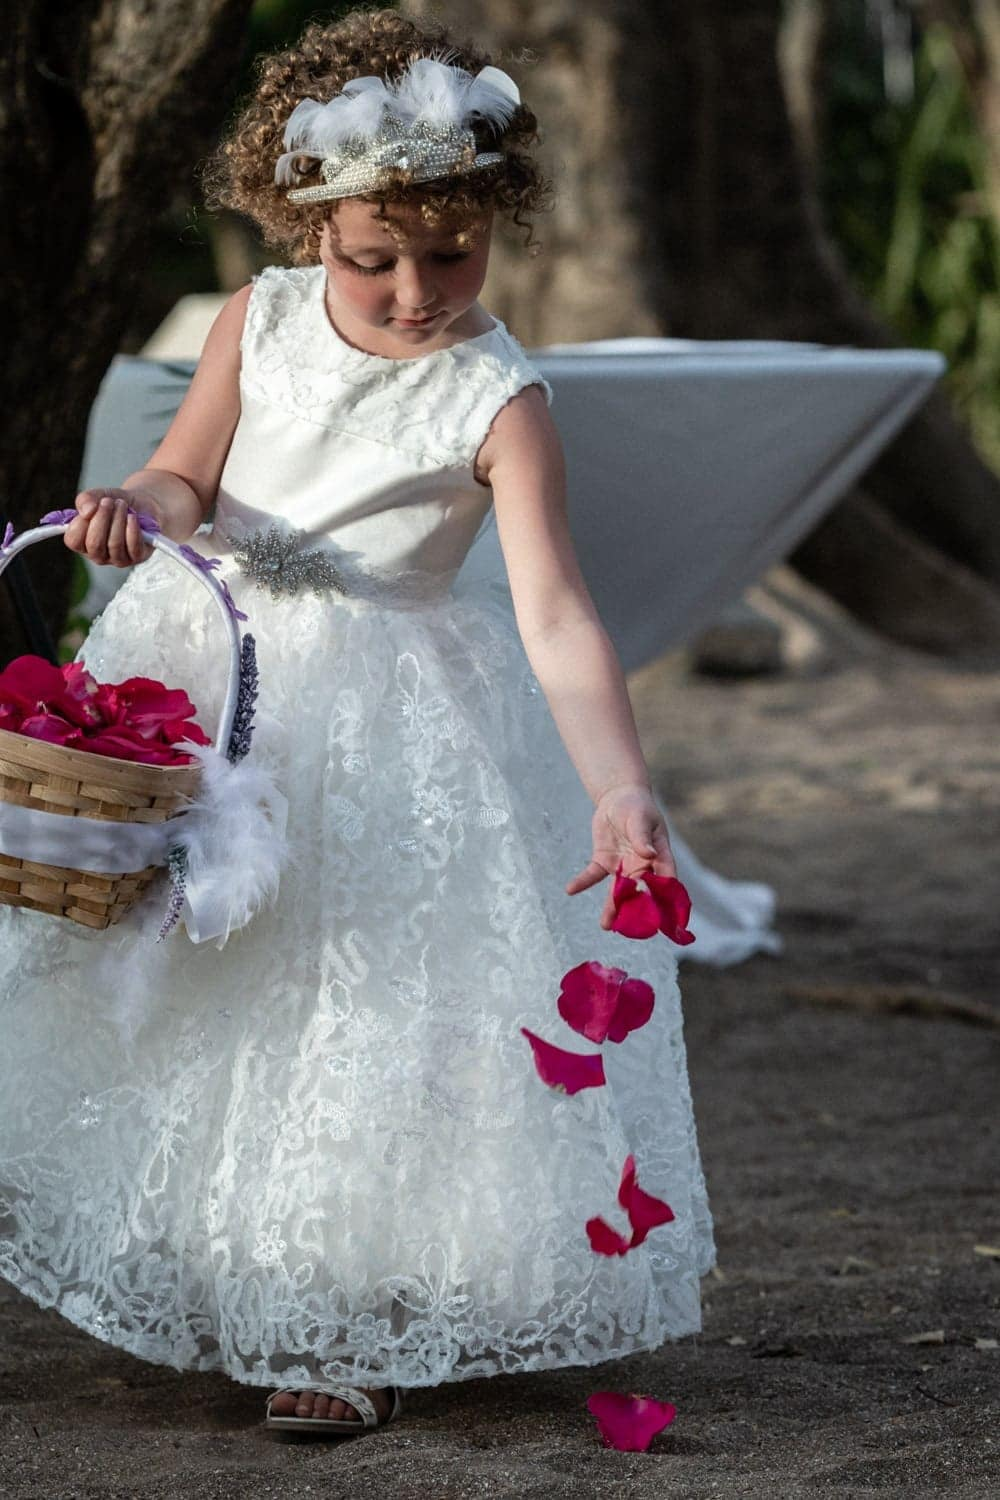 Flower girl tosses red rose petals on beach before bride walks to altar.